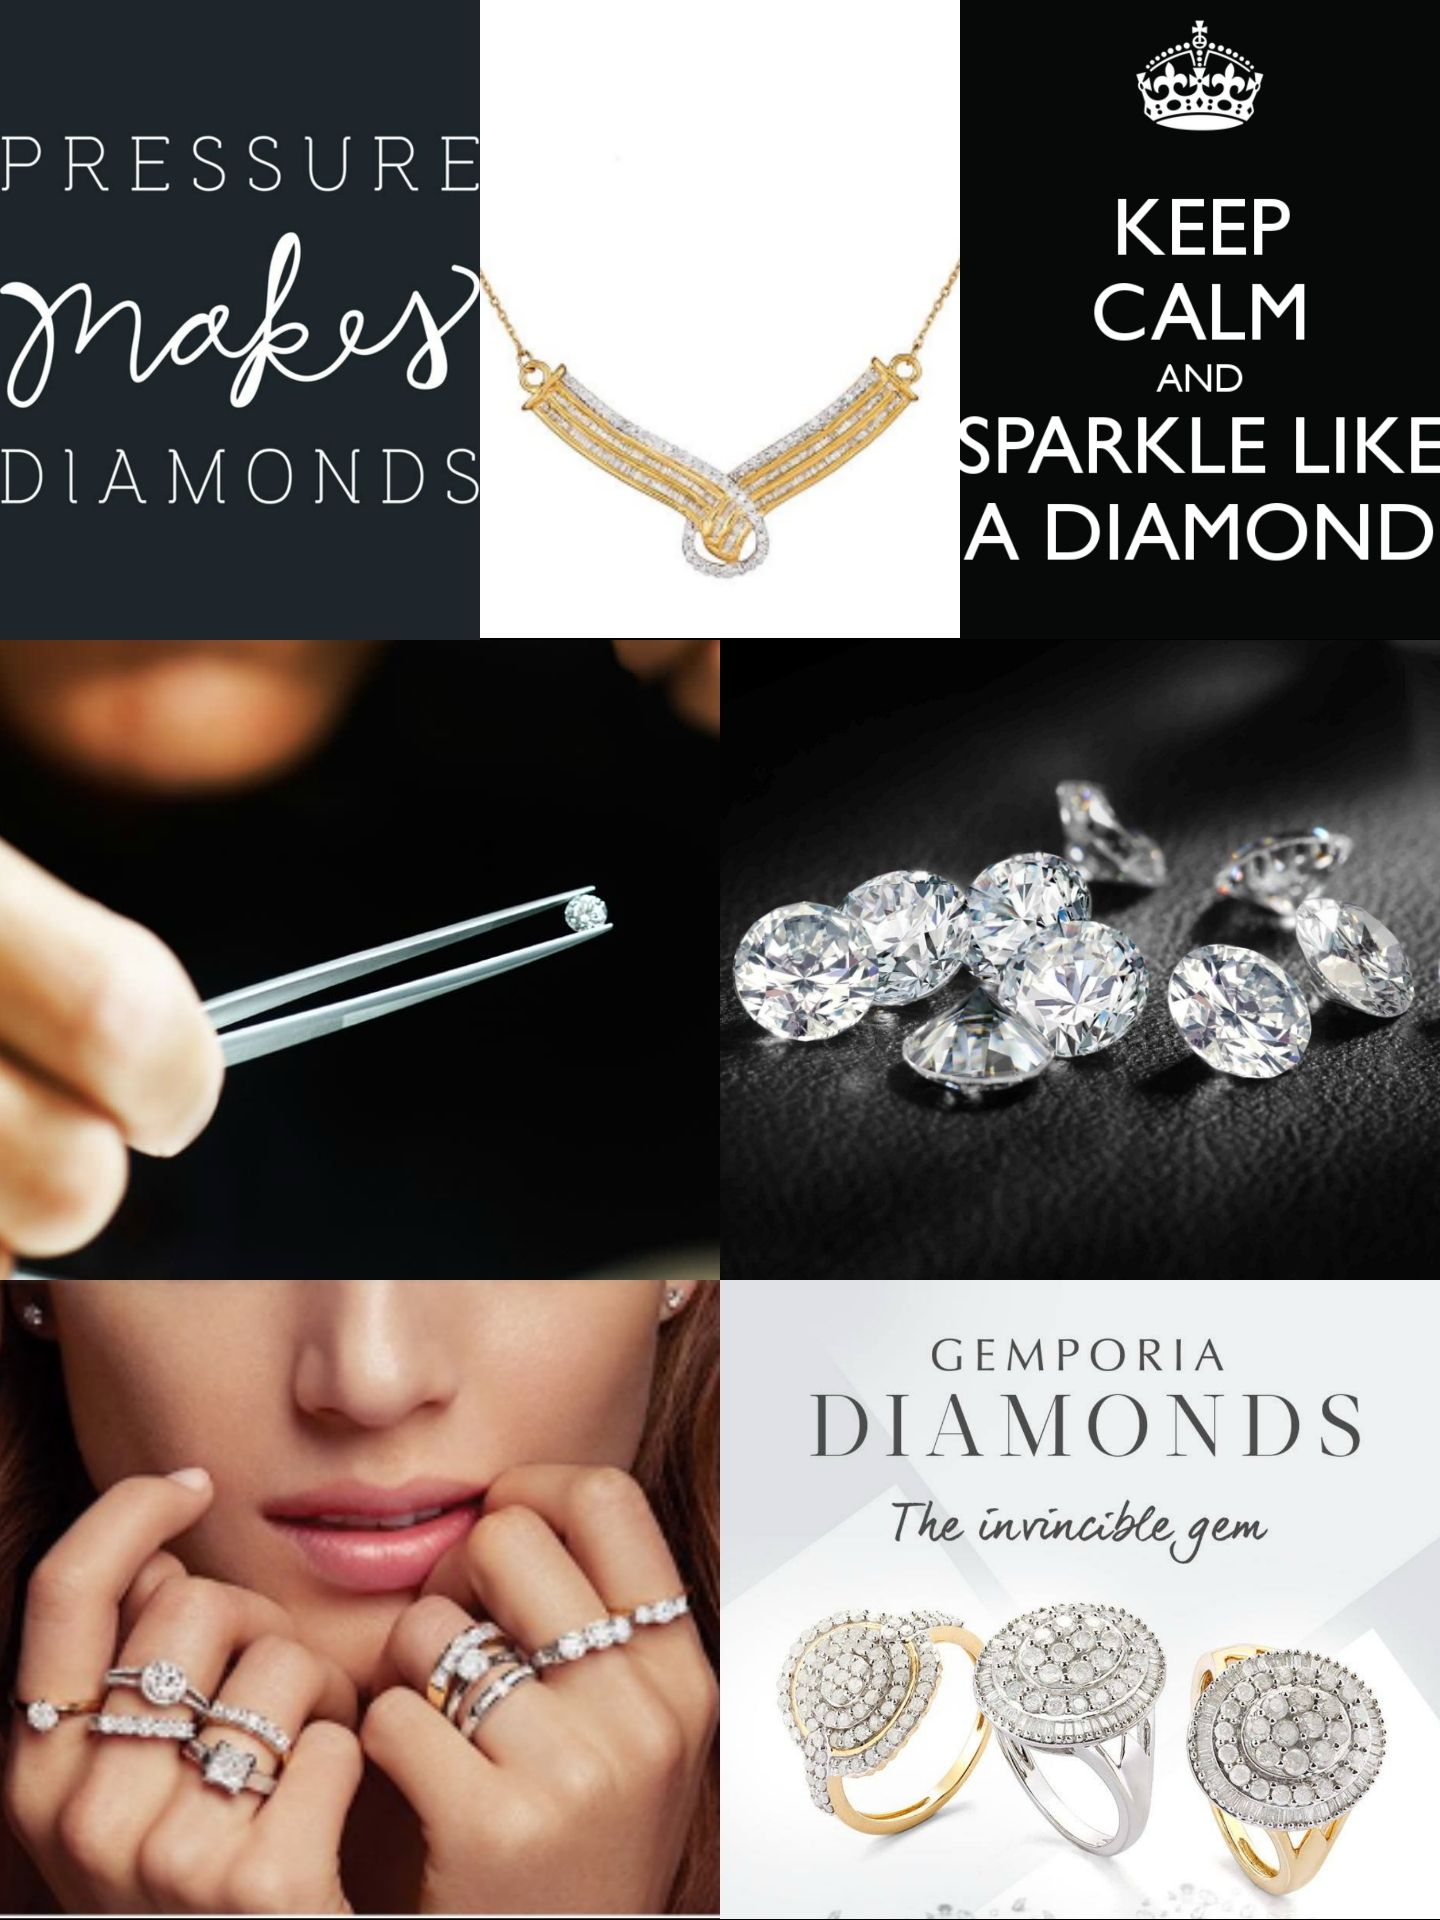 Diamond pieces are ideal for capturing the moment. Discover our exquisite collection of diamond jewellery here.